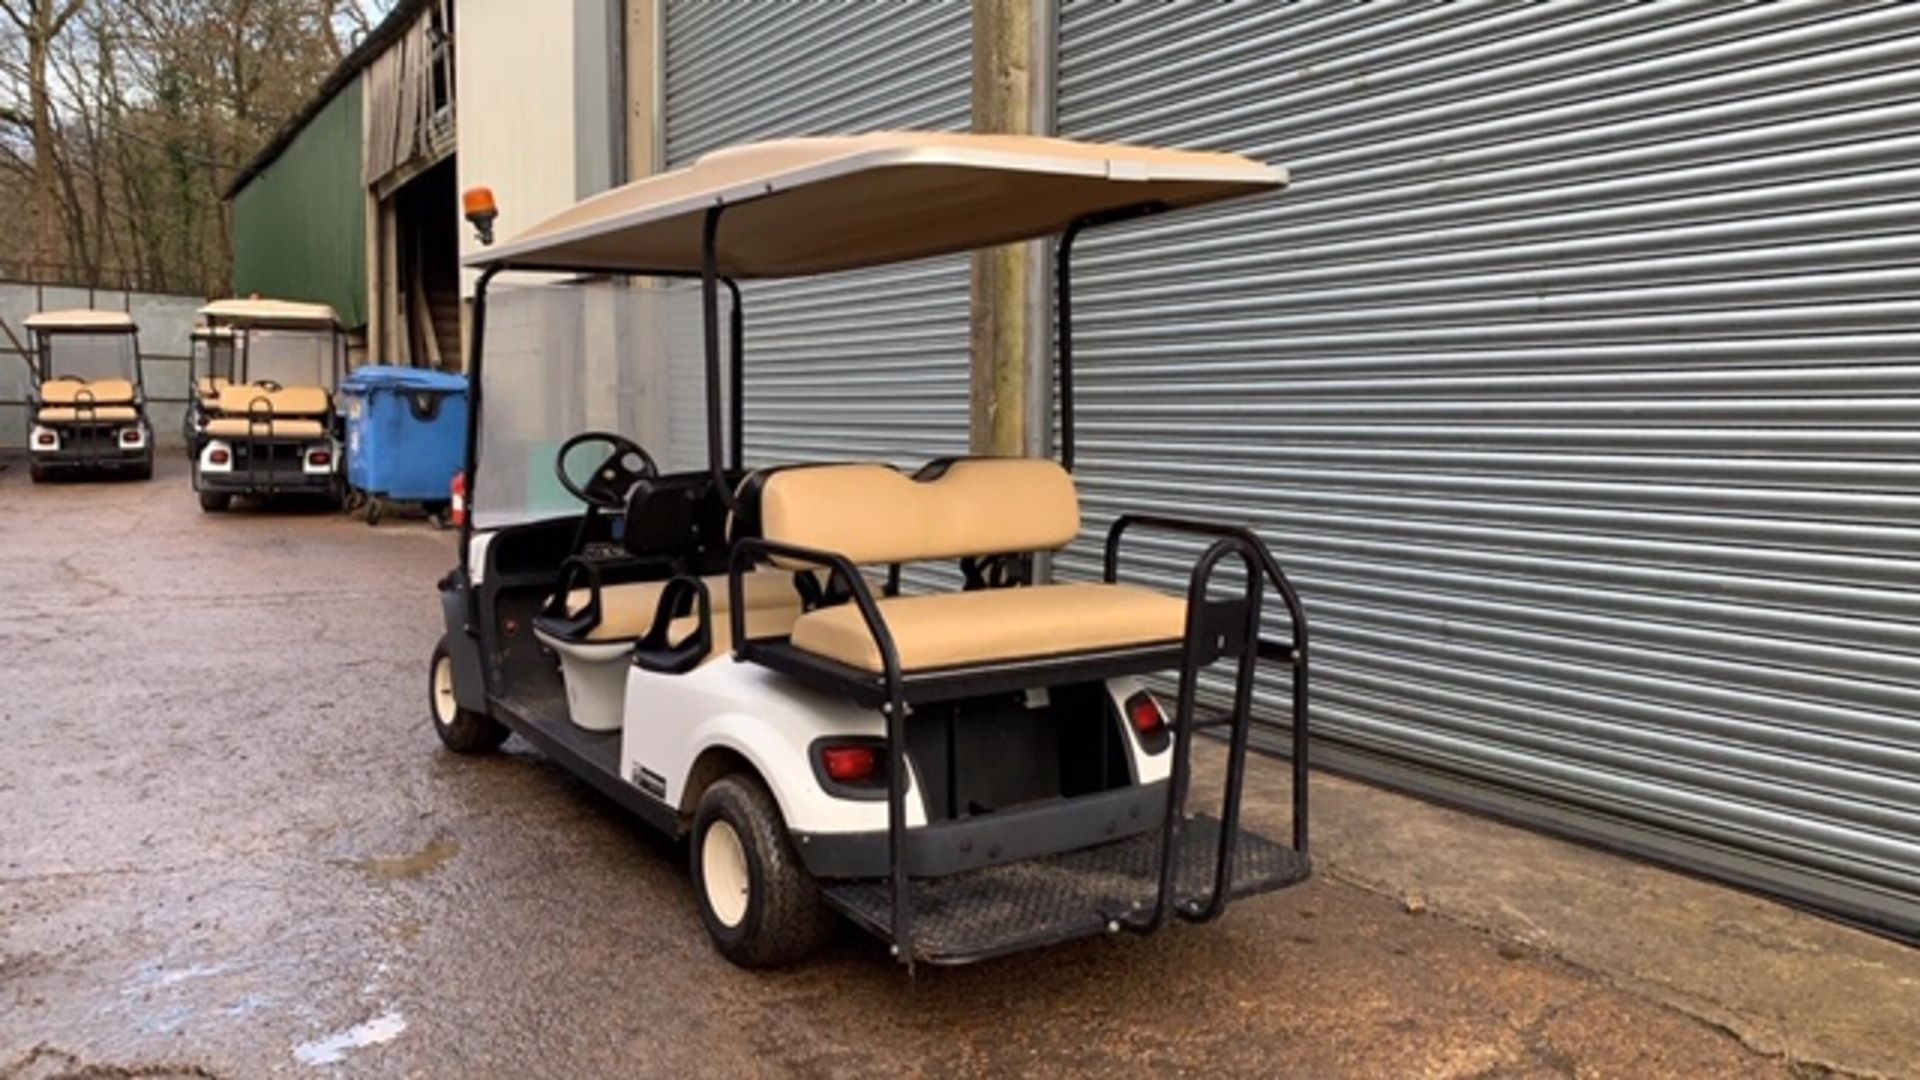 Lot 5 - CUSHMAN EZGO SHUTTLE 6 PETROL ENGINED 6 SEATER GOLF / EVENTS BUGGY. YEAR 2017 BUILD. 304 REC HRS.